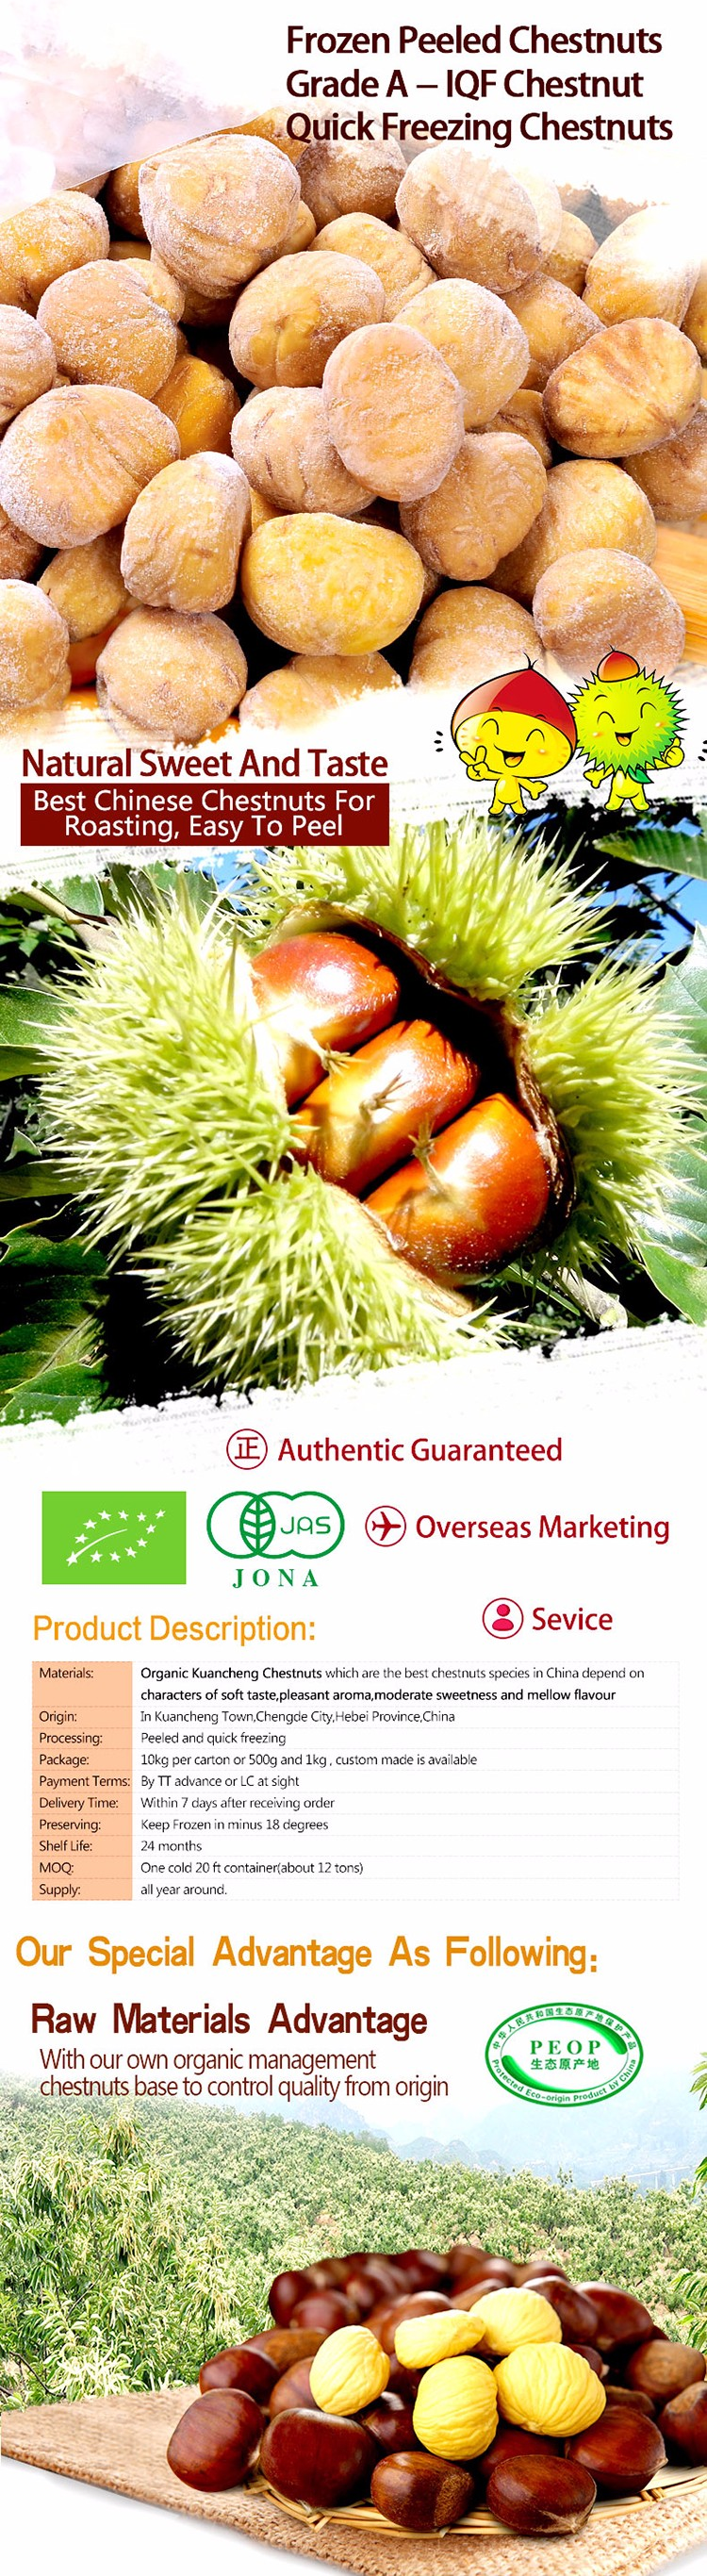 Frozen Peeled Chestnut IQF Chestnuts for sale